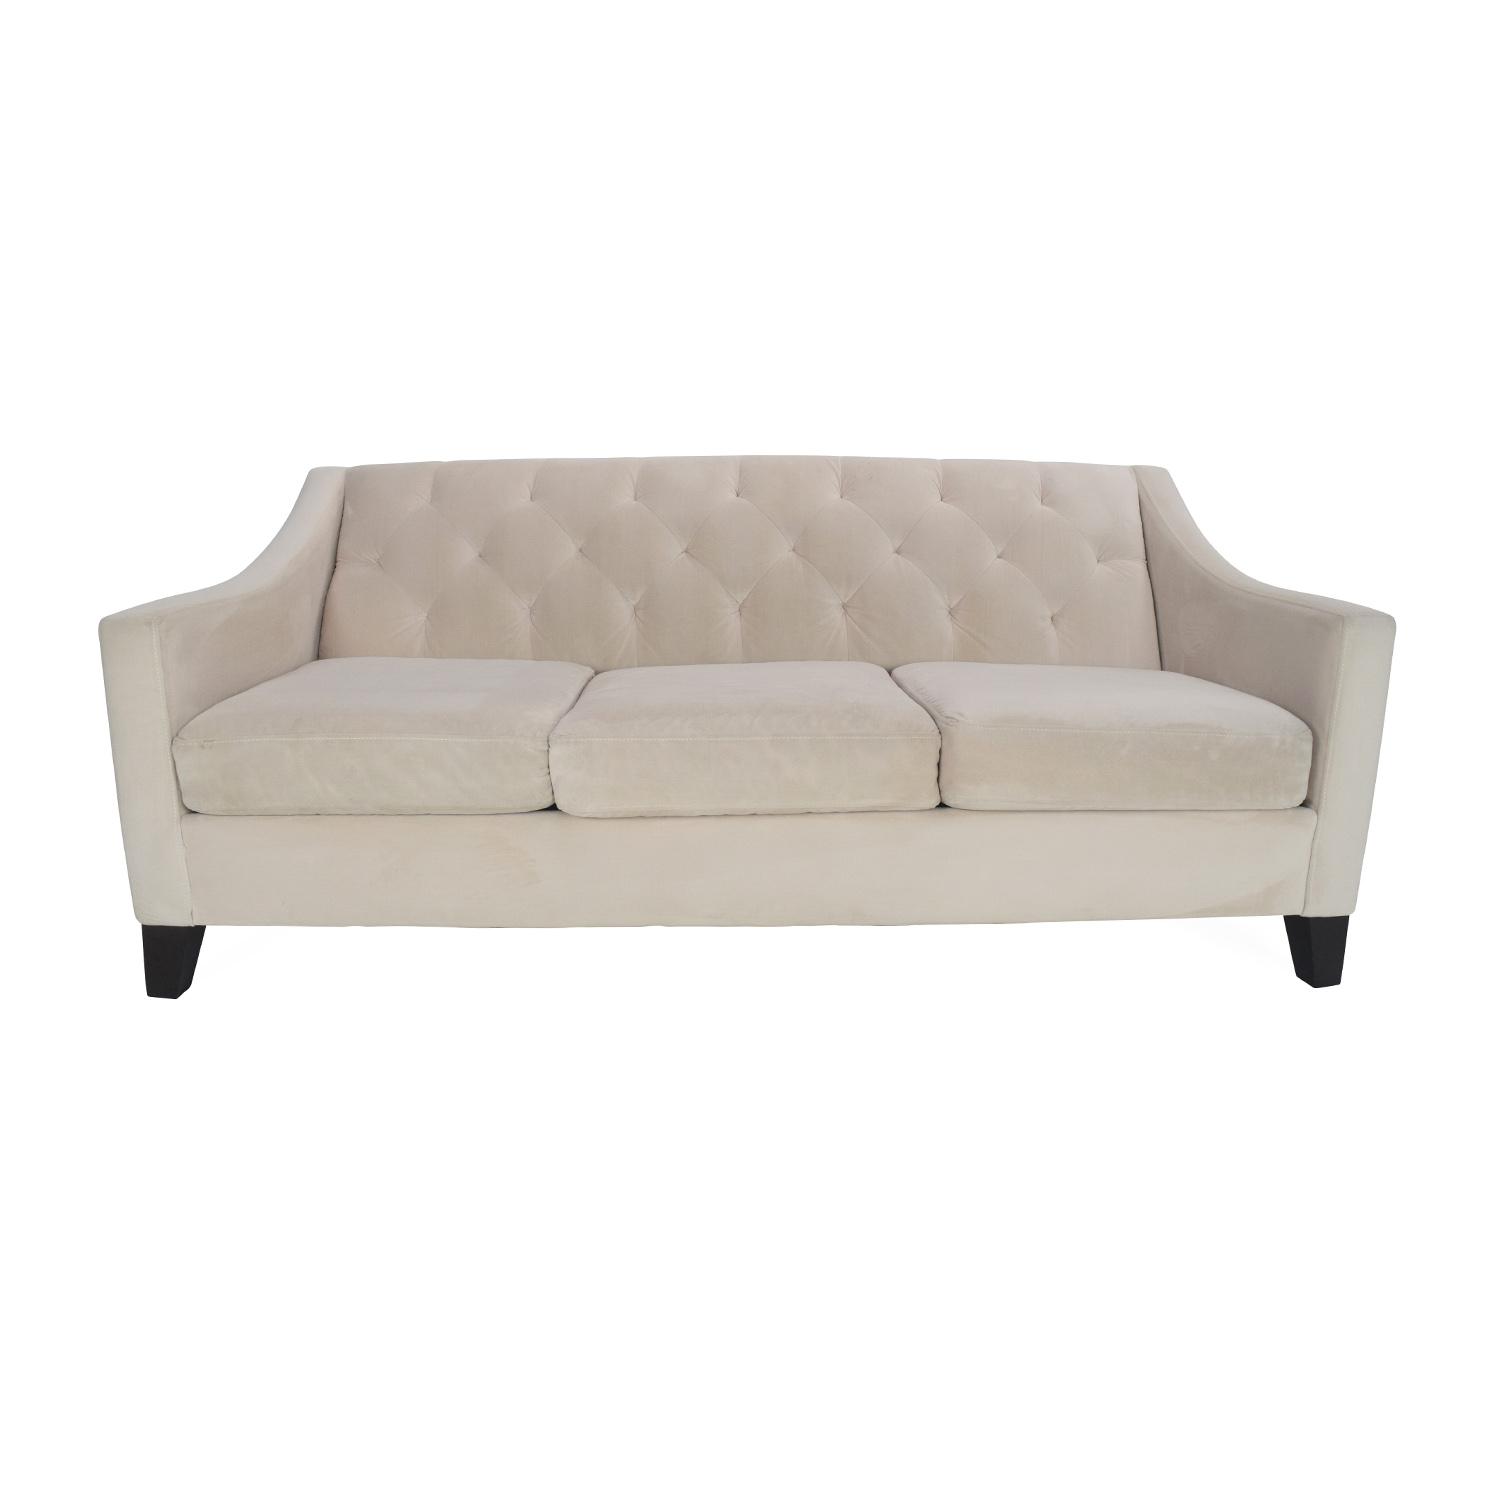 Elegant Buy Macys Chloe Tufted Sofa Max Home Furniture ... Design Ideas